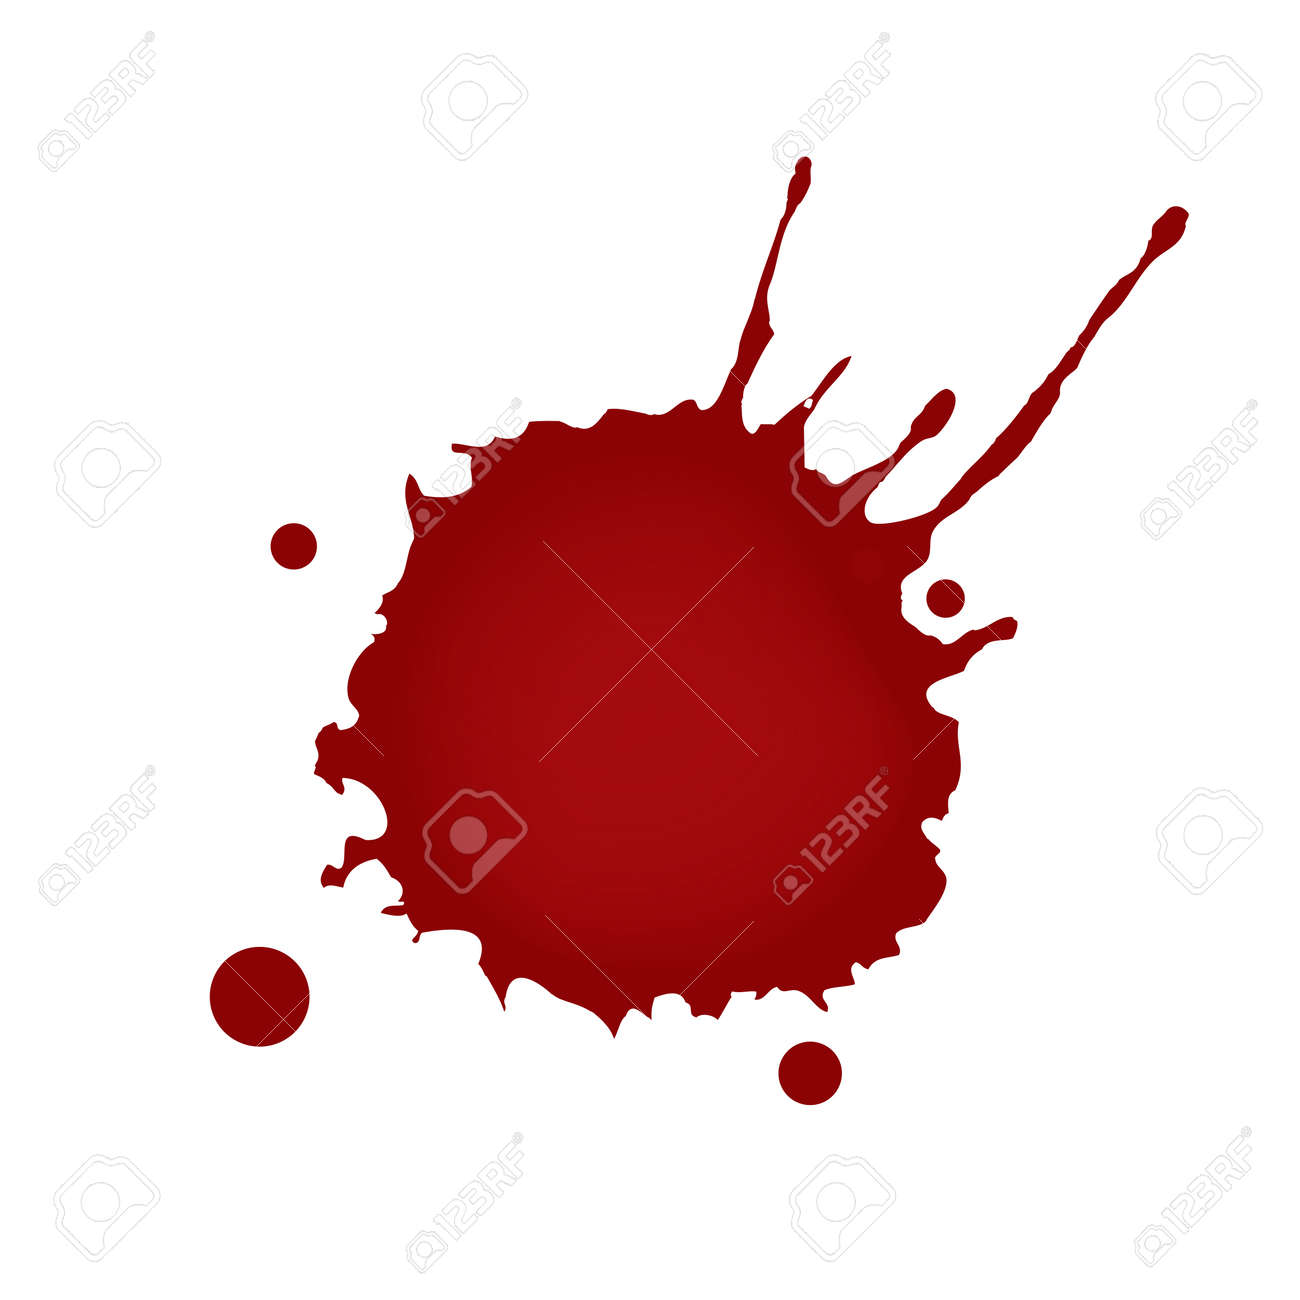 realistic blood splatters royalty free cliparts vectors and stock rh 123rf com blood splatter vector art free blood splatter vector free download